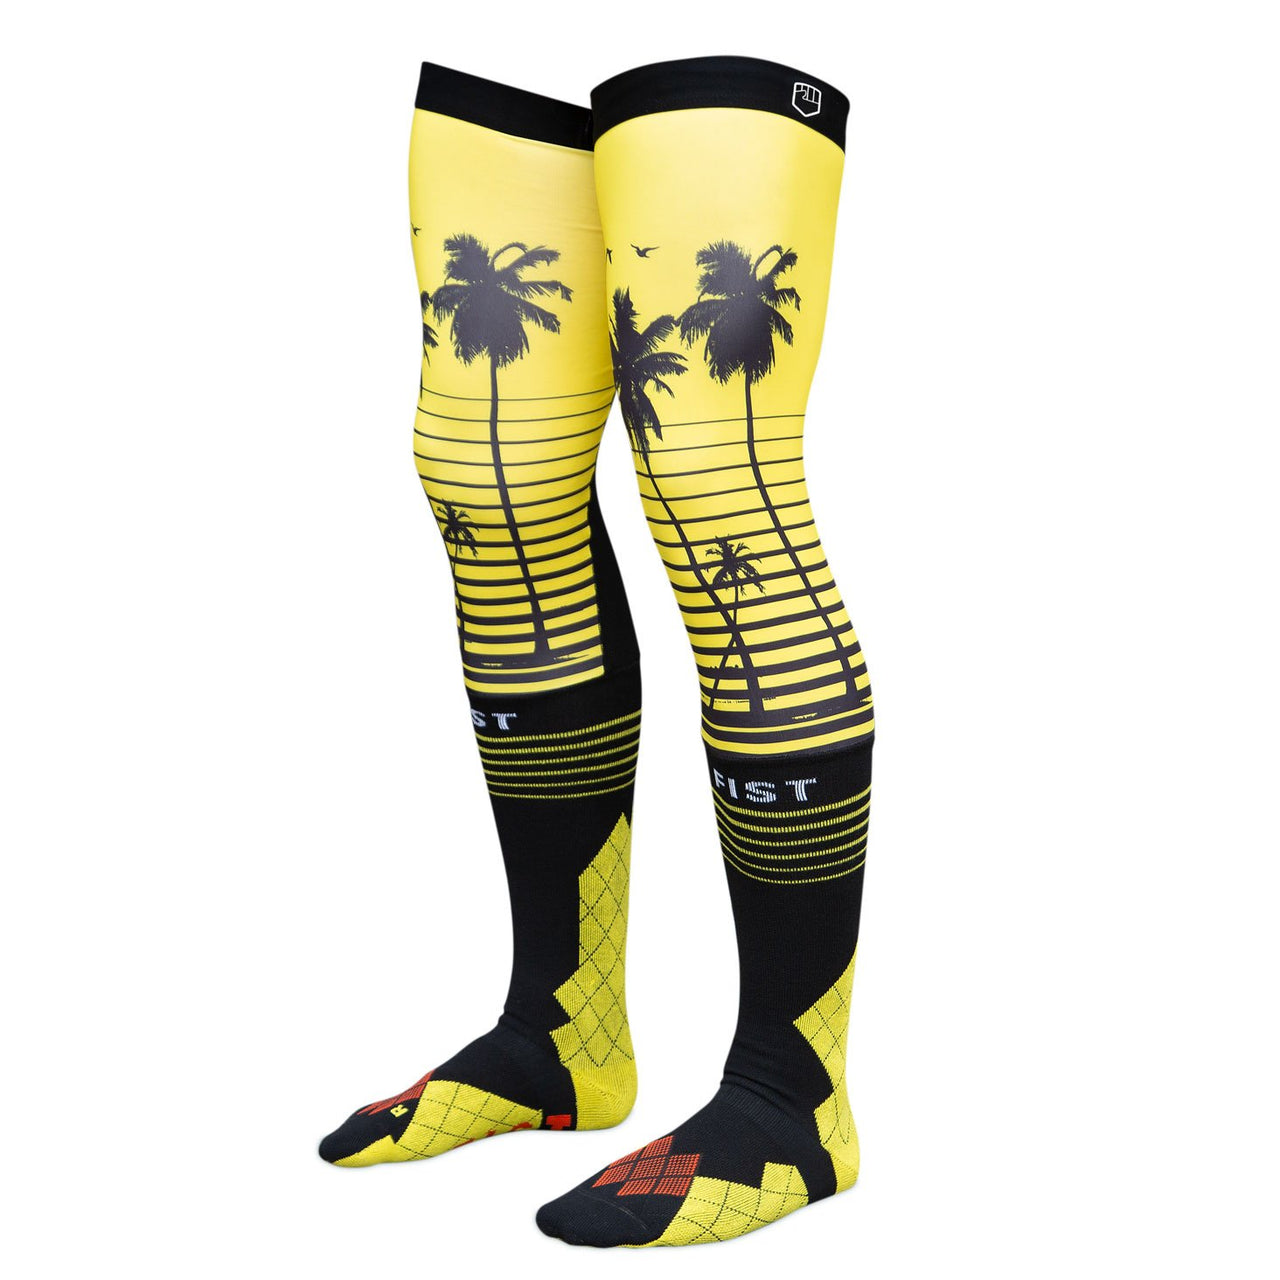 MIAMI PHASE 2 MOTO SOCK